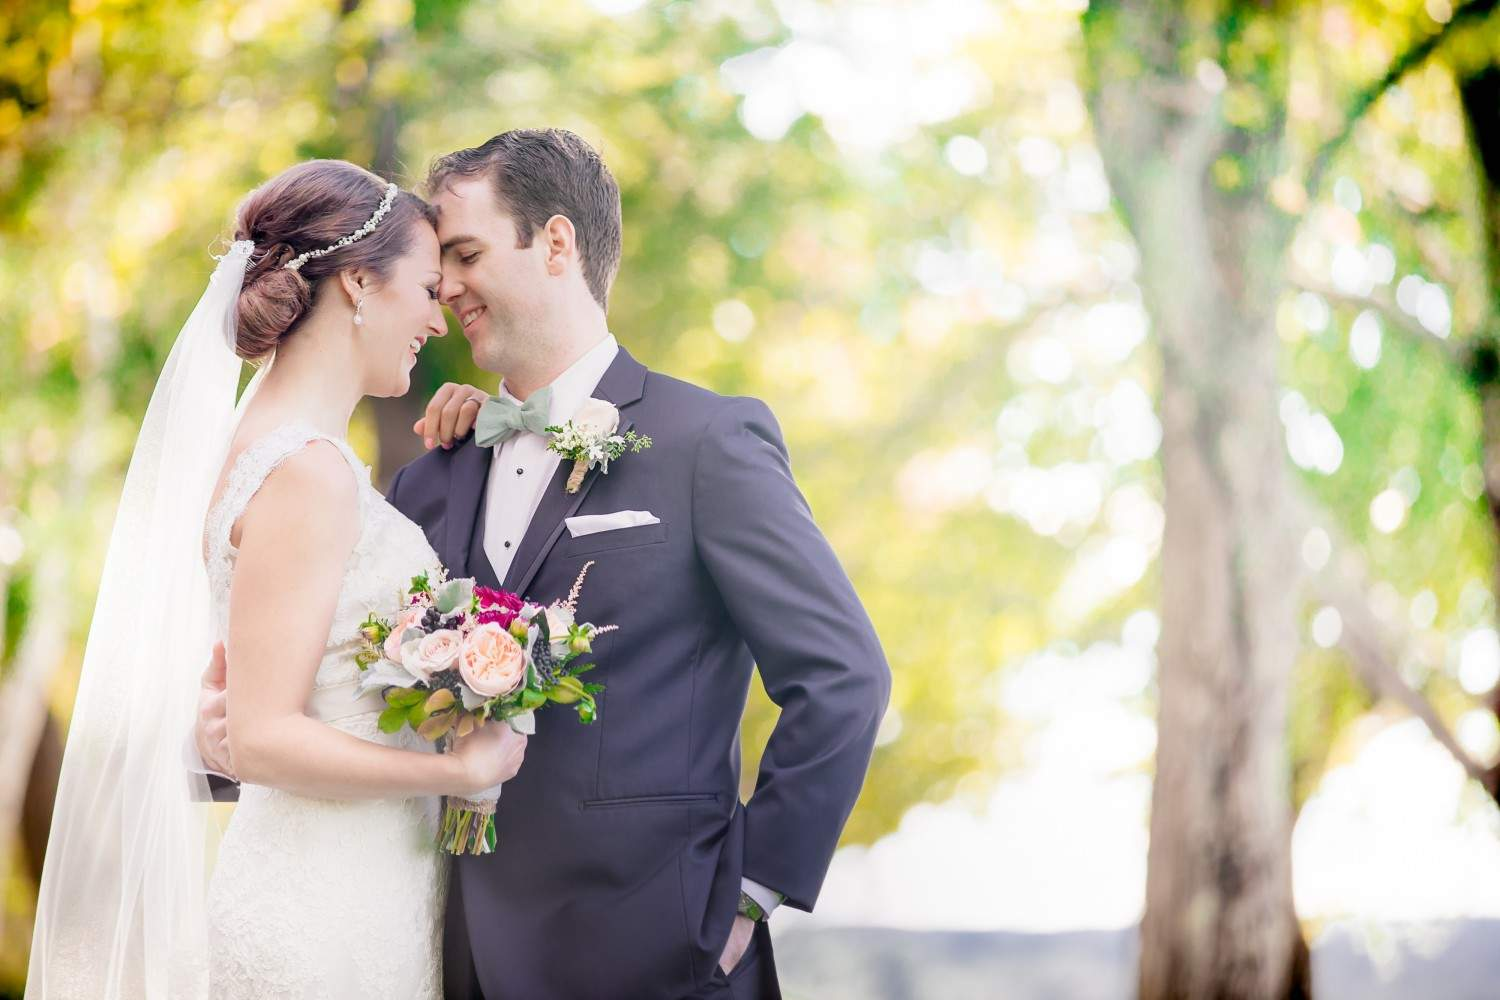 NH Wedding Photographer- K. Lenox Photography 2